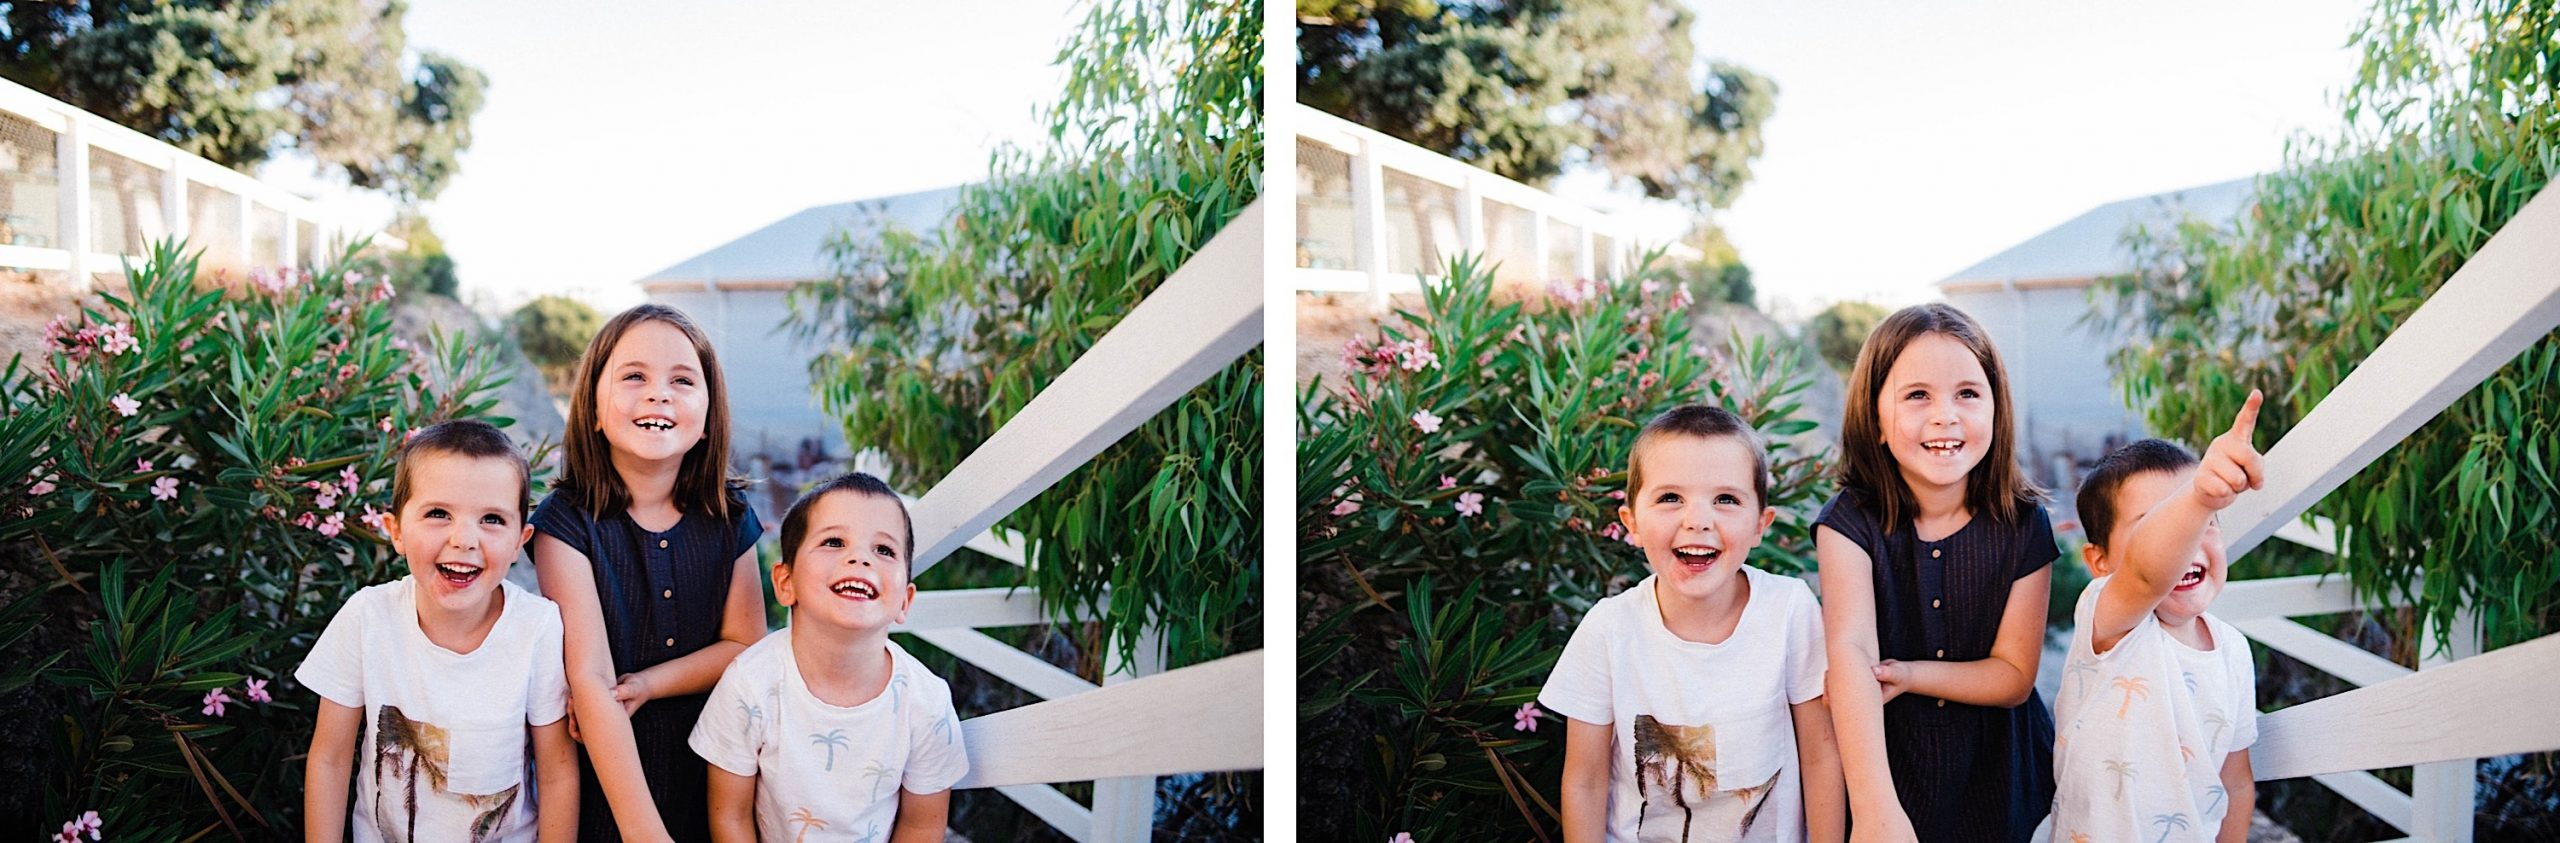 Side-by-side photos of three kids, surrounded by greenery, looking up and laughing at their parents.